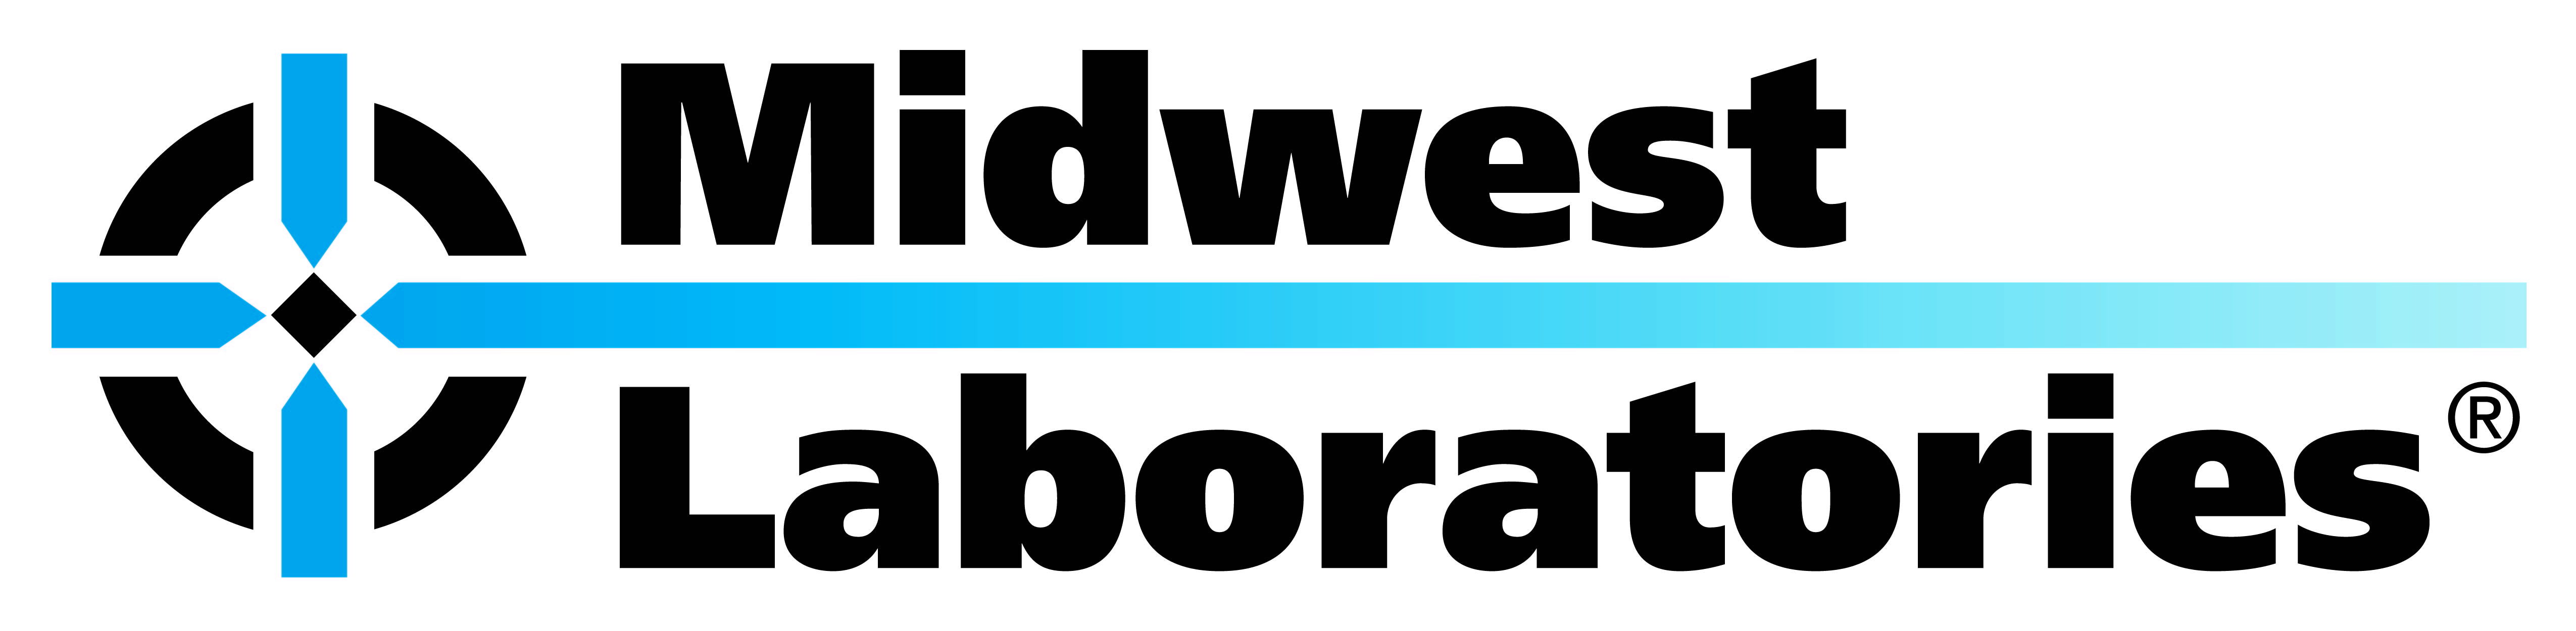 Midwest Laboratories | logo | www.midwestlabs.com